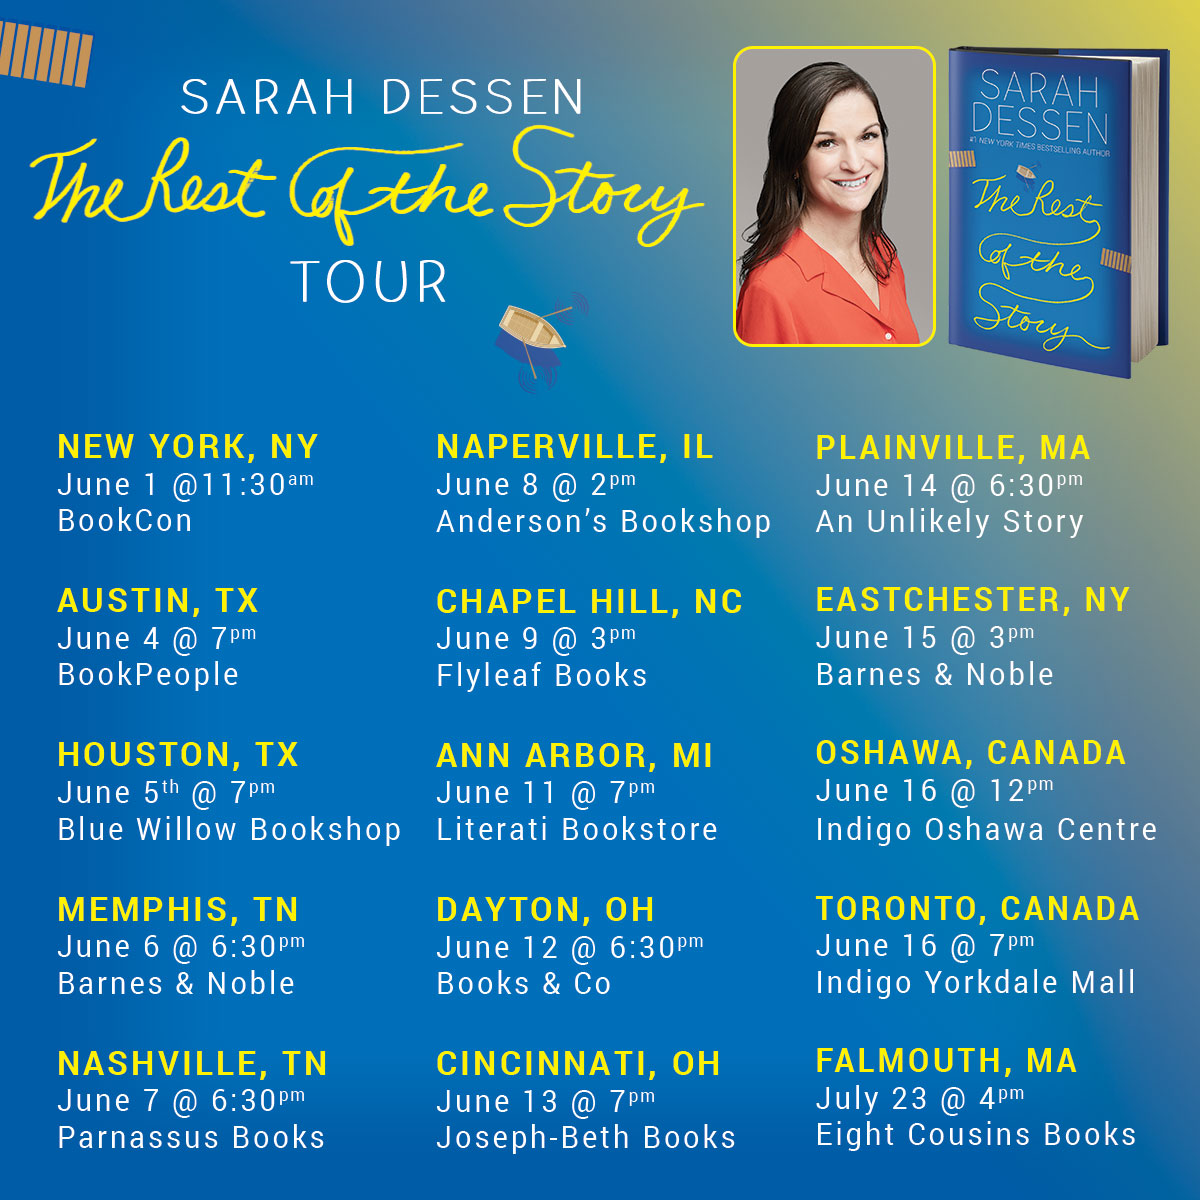 Sarah Dessen's The Rest of The Story book tour